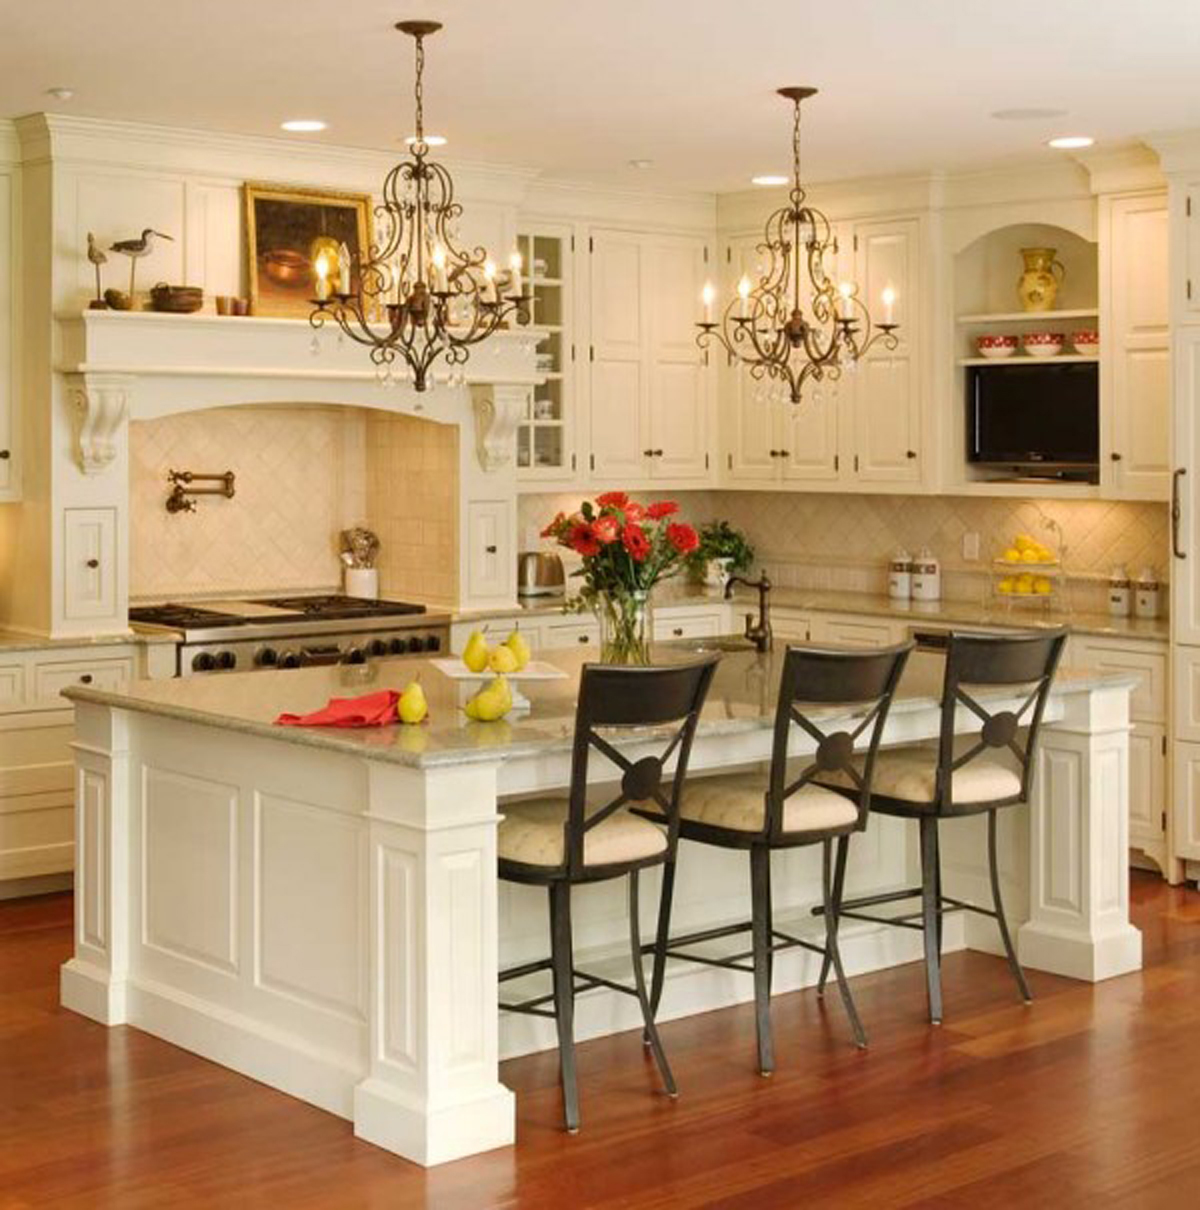 White island kitchen backsplash ideas for Kitchen designs island